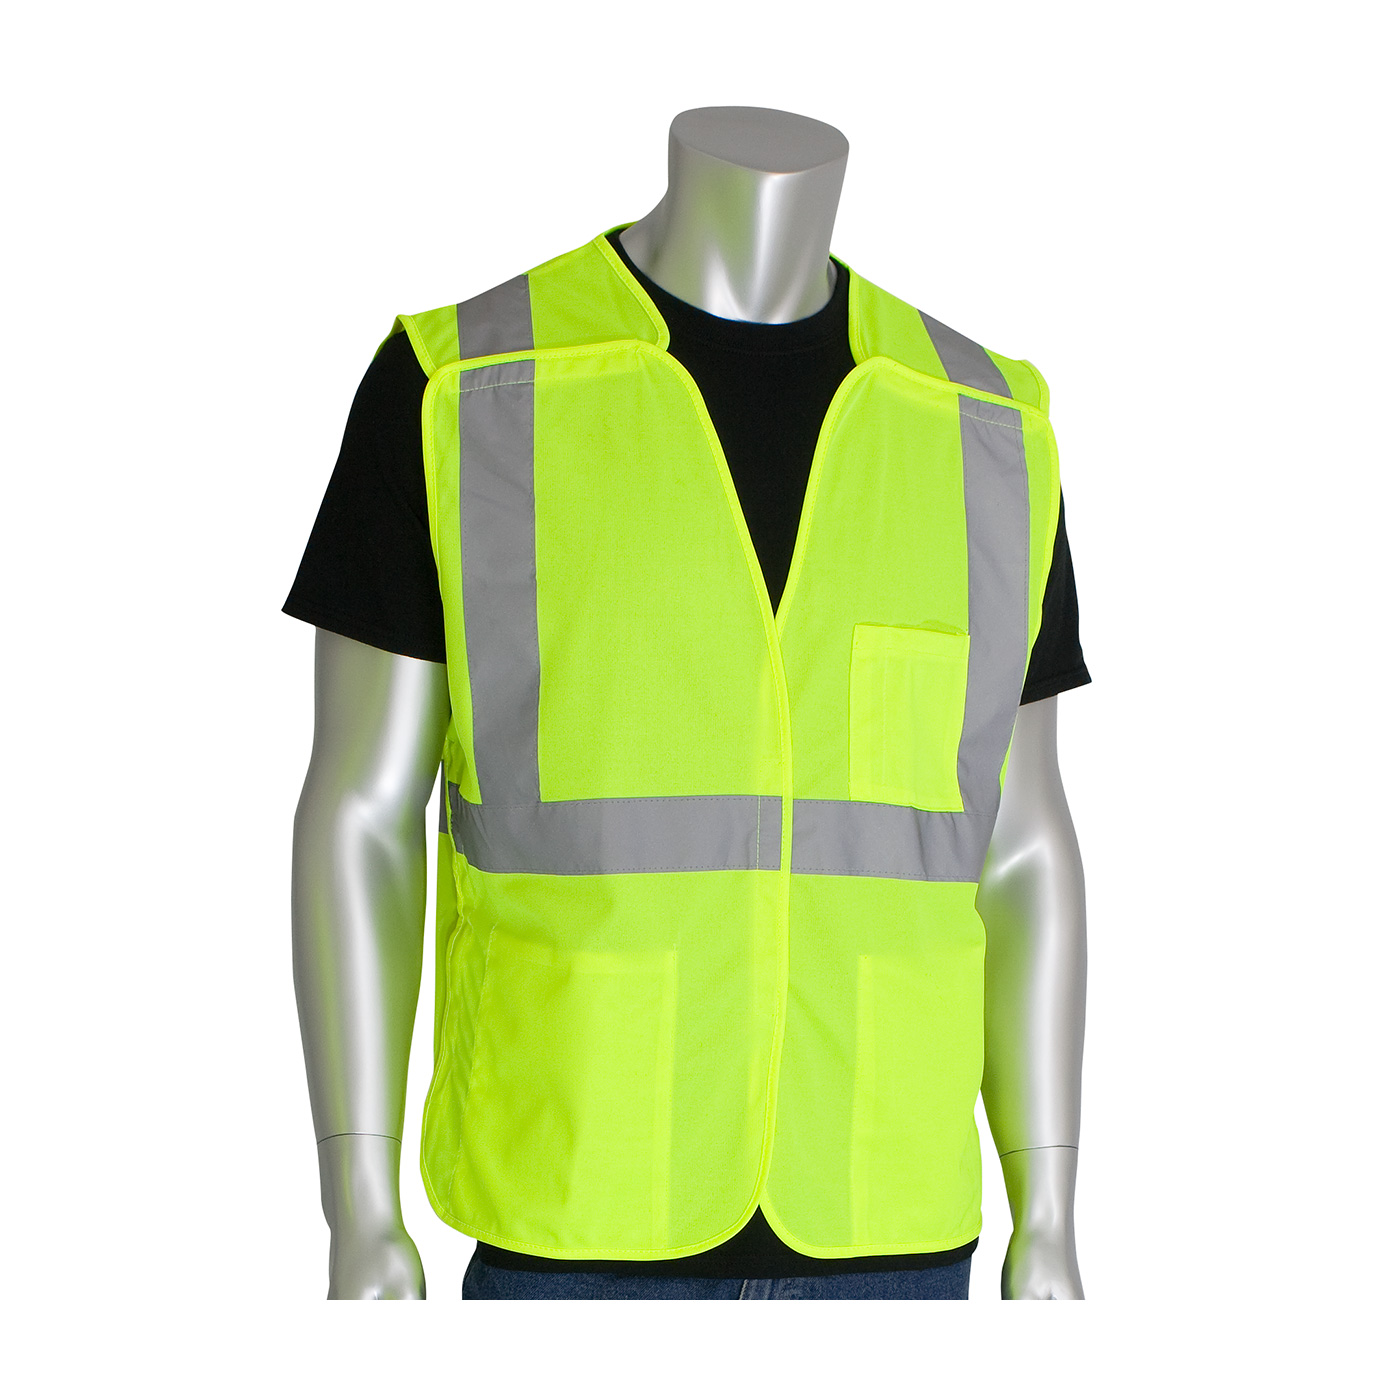 PIP® ANSI Type R Class 2 Three Pocket Mesh Breakaway Vest #302-5PMV